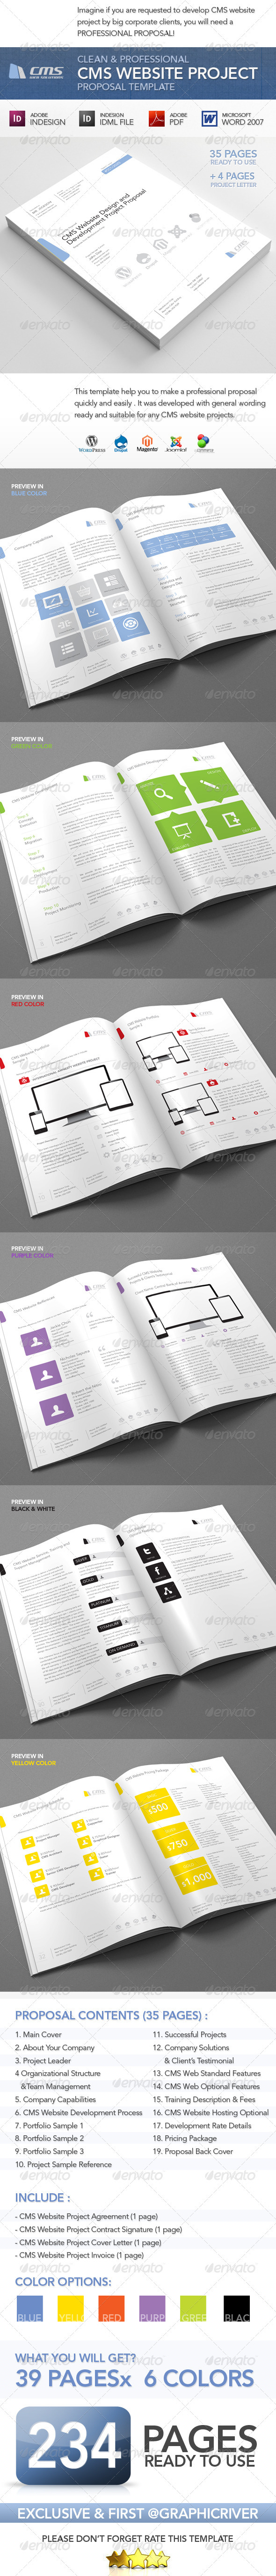 Clean and Professional CMS Web Project Proposal - Proposals & Invoices Stationery